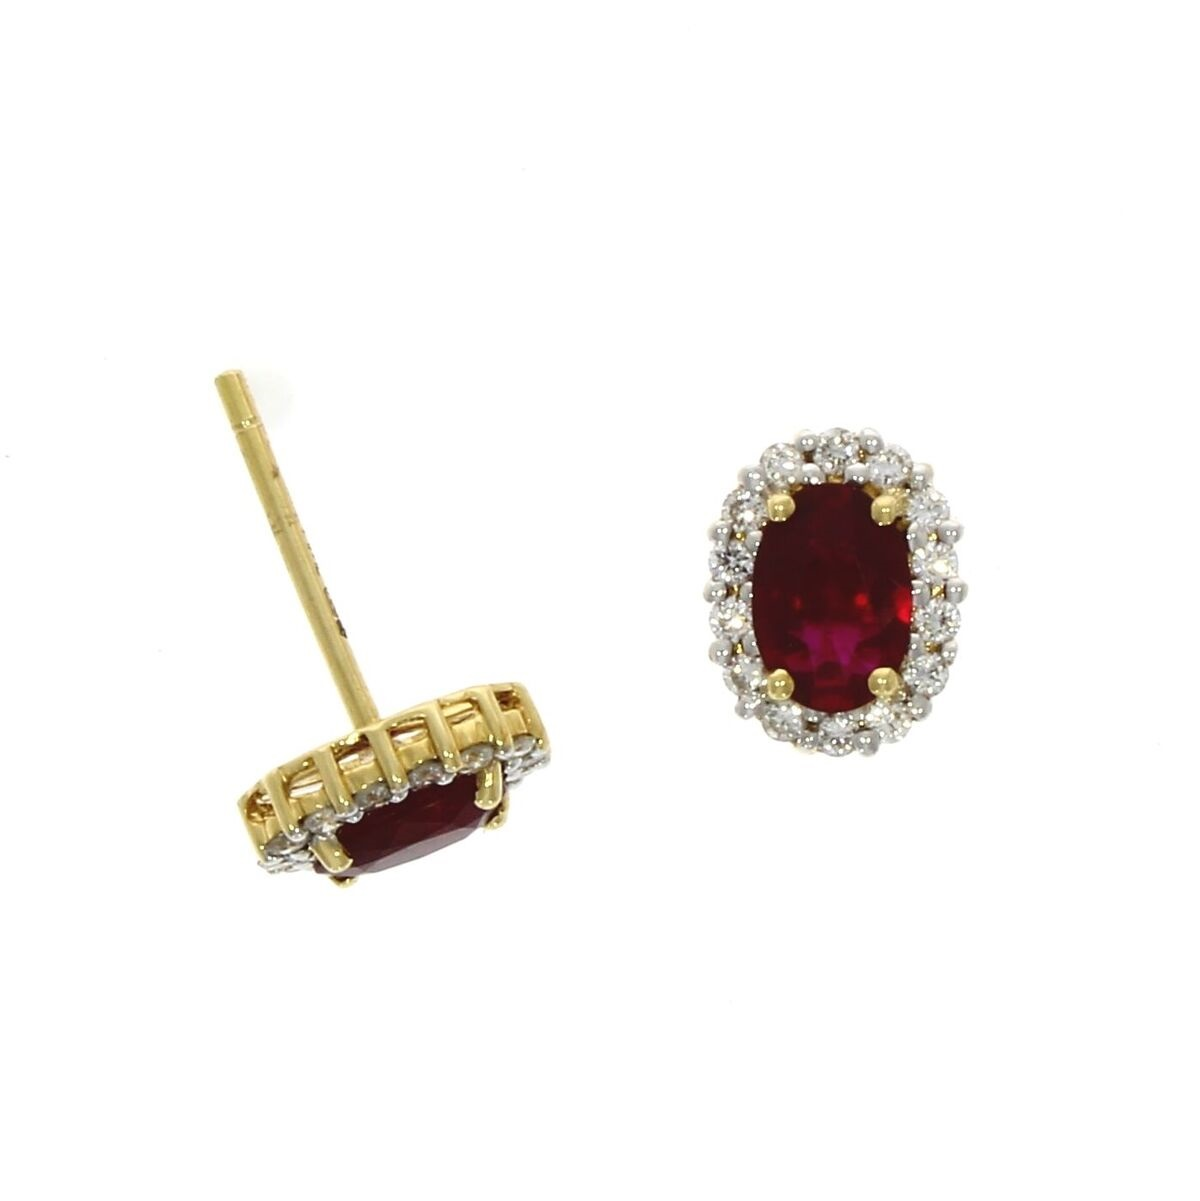 18ct Yellow Gold 1.00ct Ruby + 0.27ct Diamond Earrings